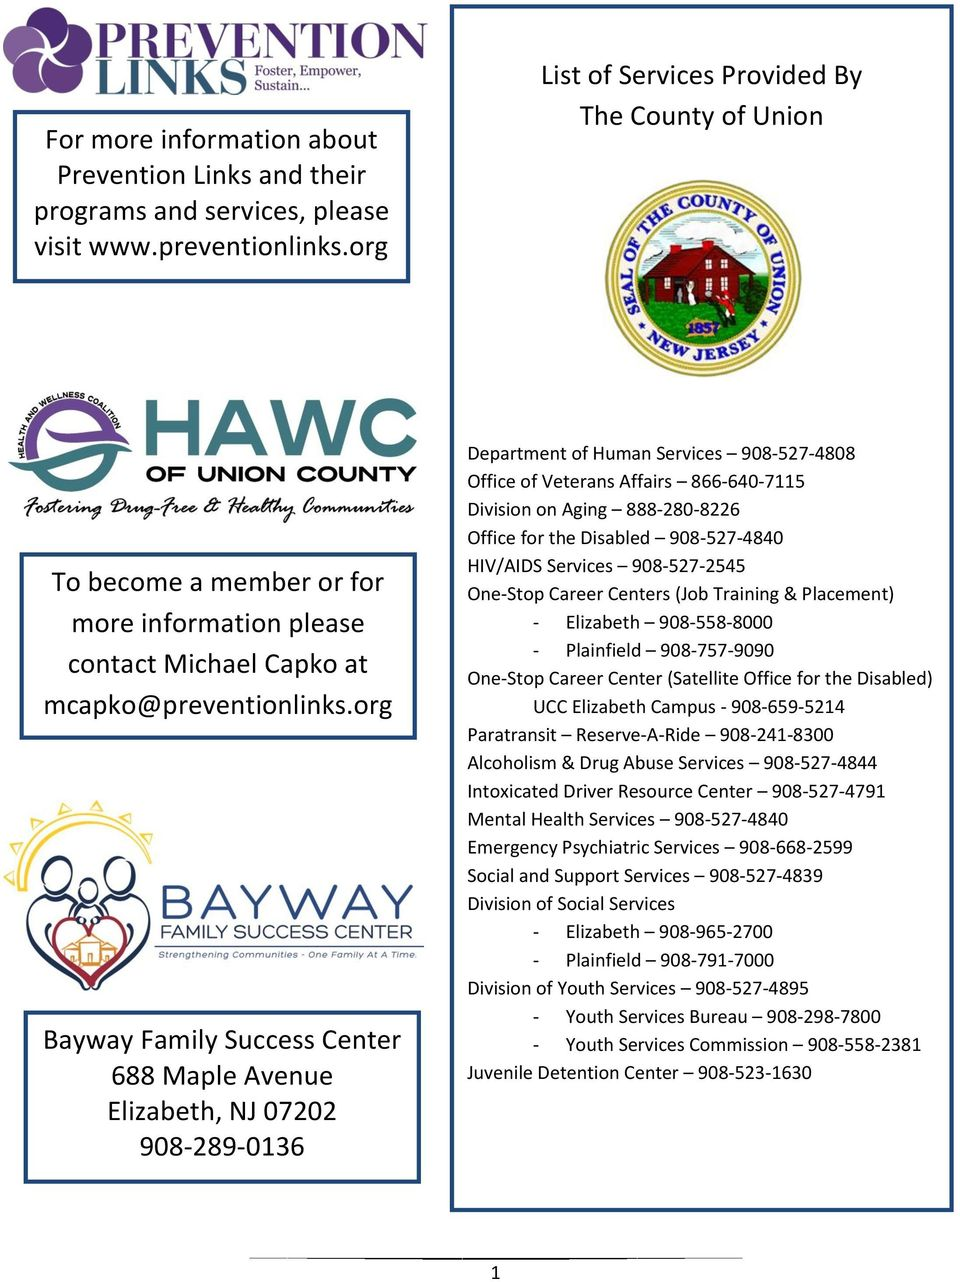 org Bayway Family Success Center 688 Maple Avenue Elizabeth, NJ 07202 908-289-0136 Department of Human Services 908-527-4808 Office of Veterans Affairs 866-640-7115 Division on Aging 888-280-8226